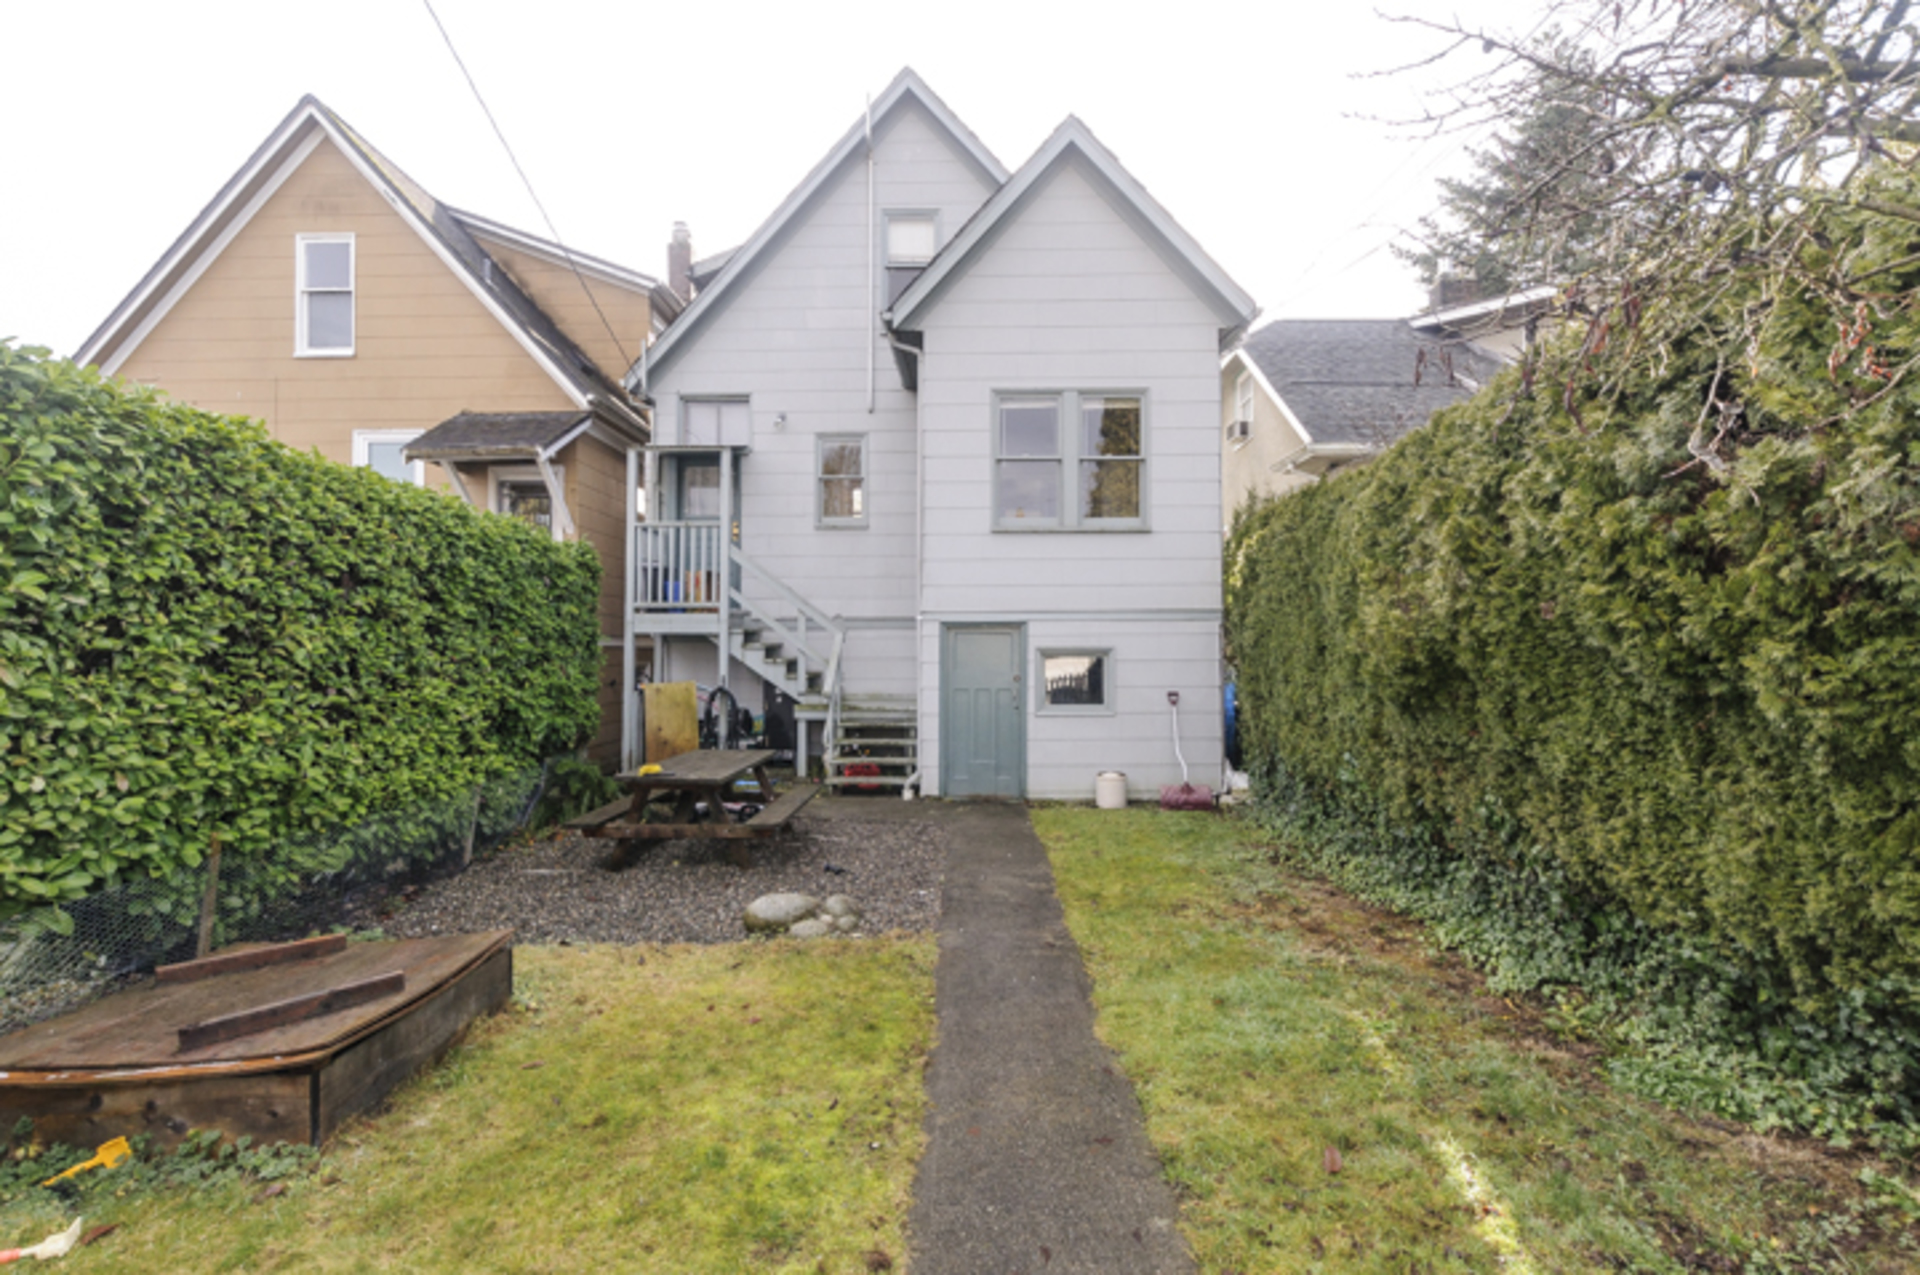 1233-e-19th-ave-web-8 at 1233 East 19th Avenue, Knight, Vancouver East